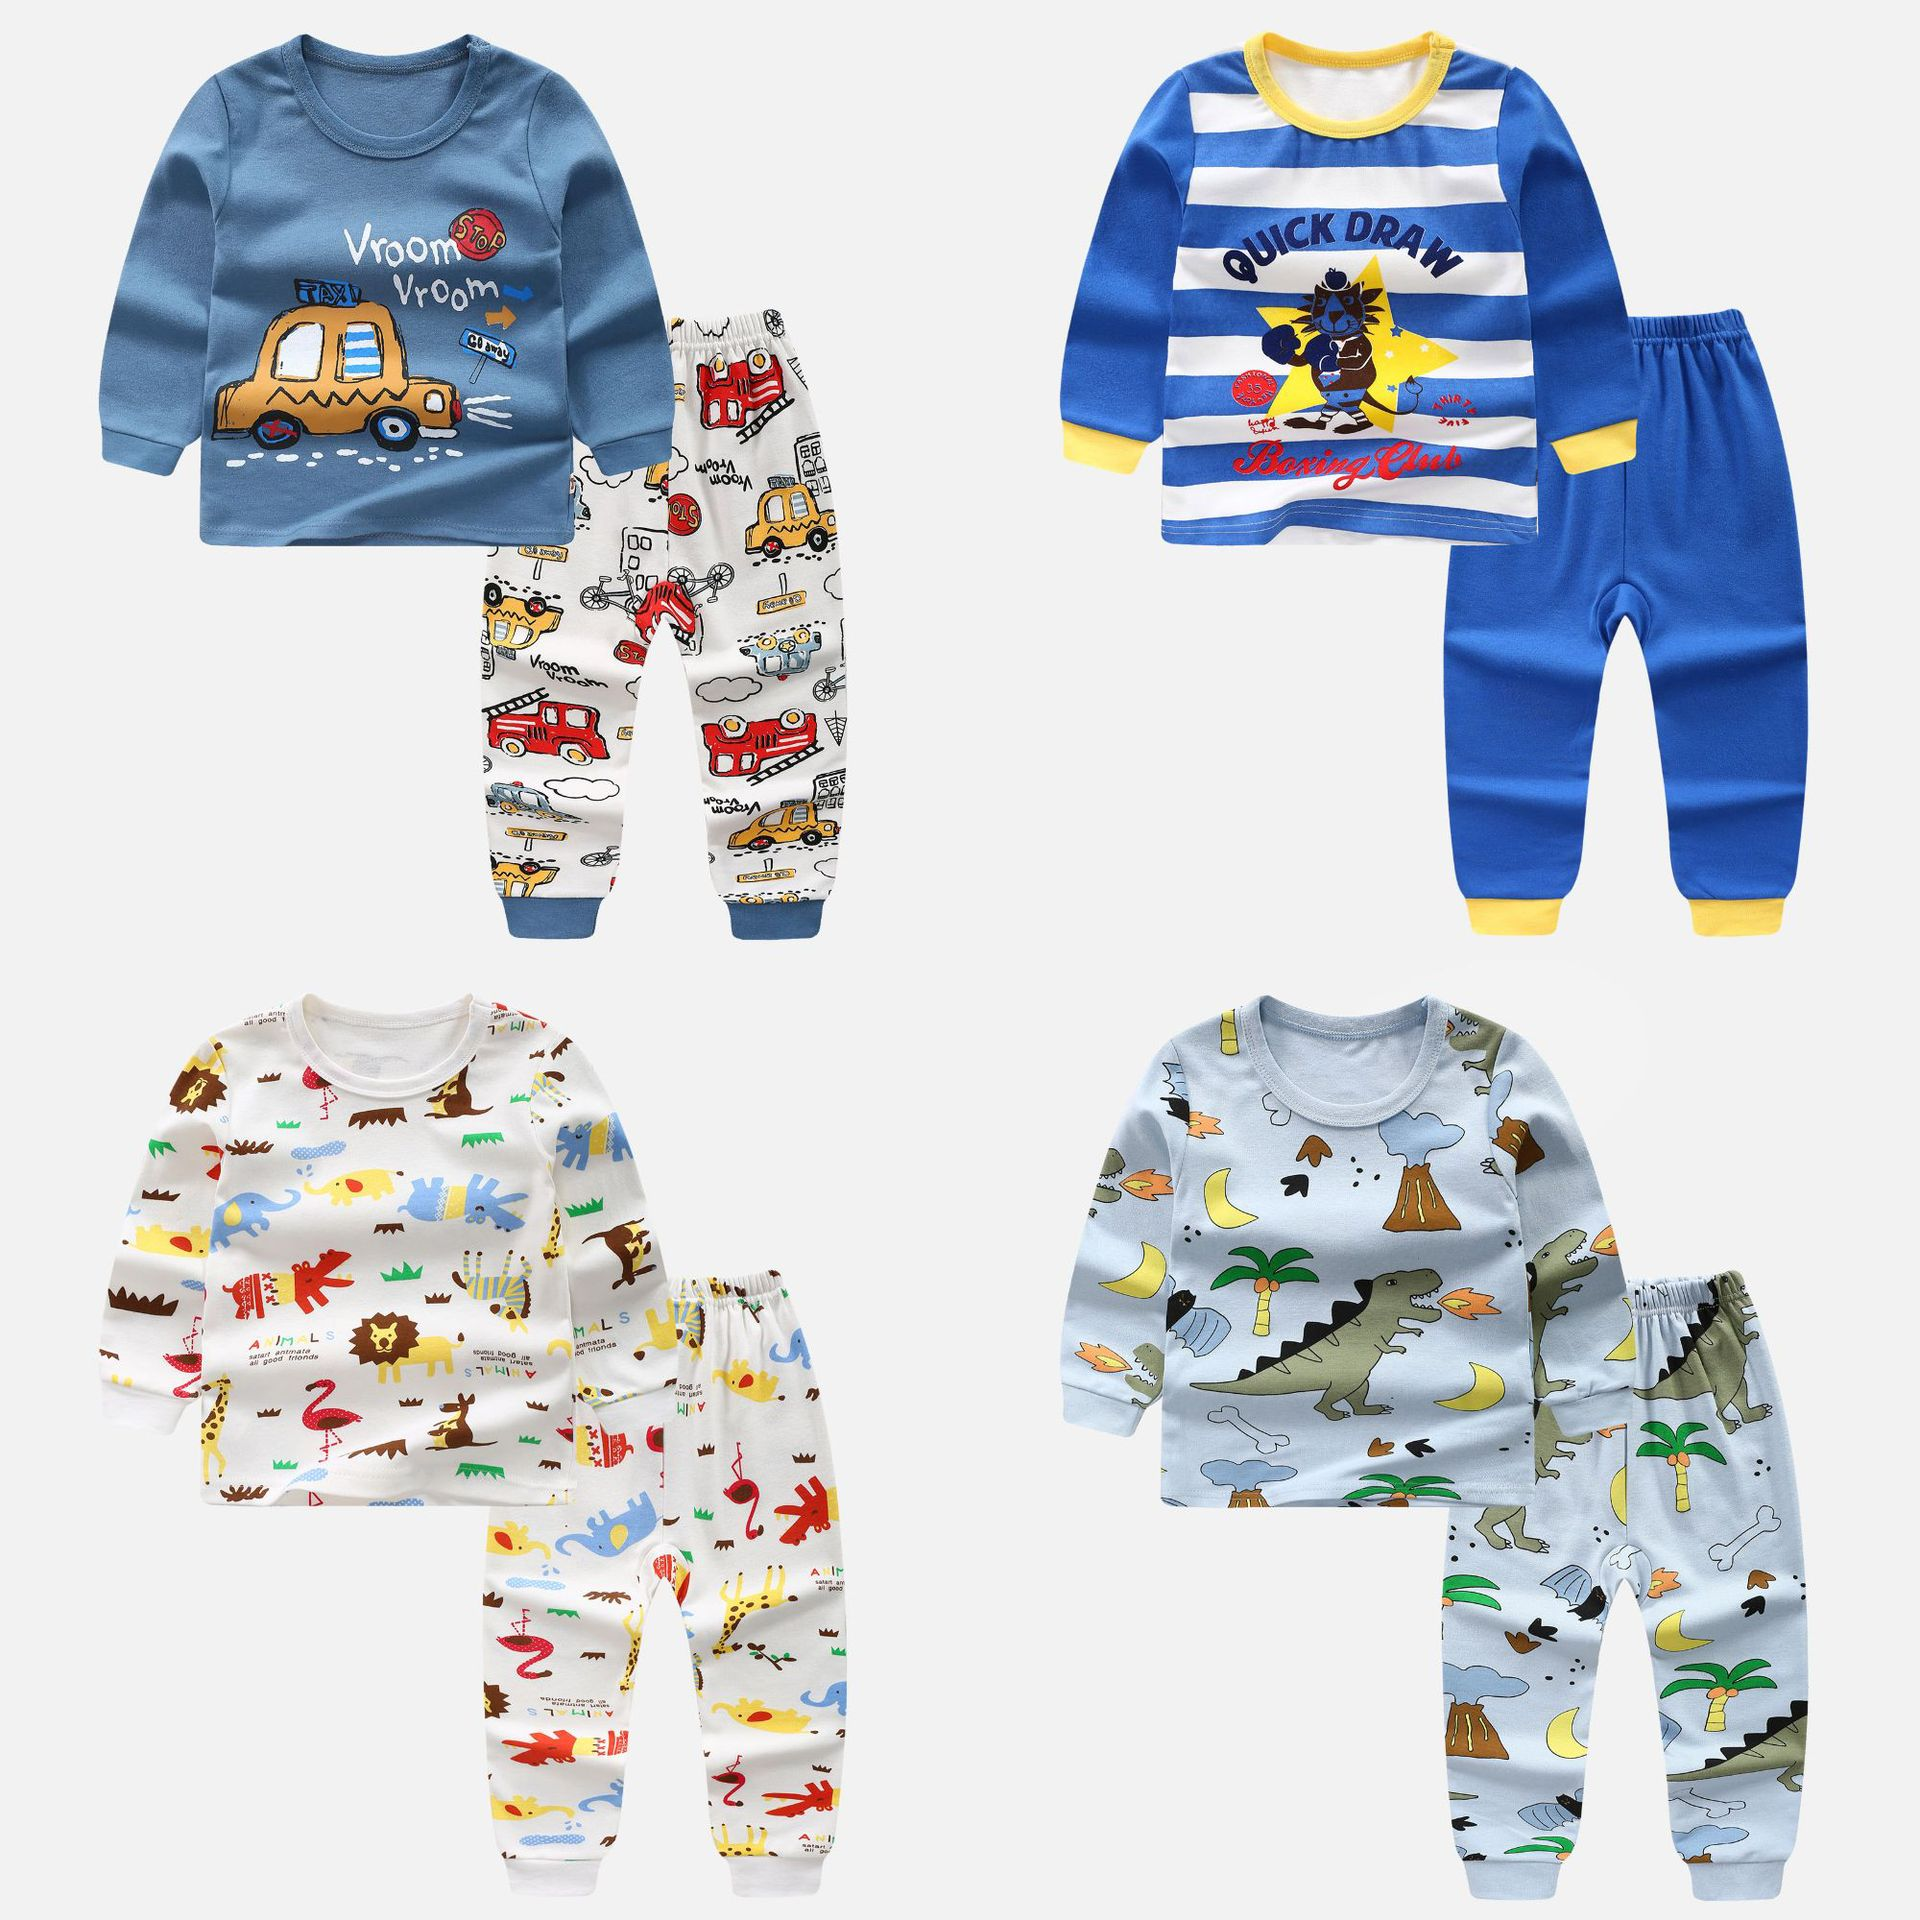 high quality Boy cartoon Pajama Suit Toddler Long Sleeve Sleepwear Kid Outfit